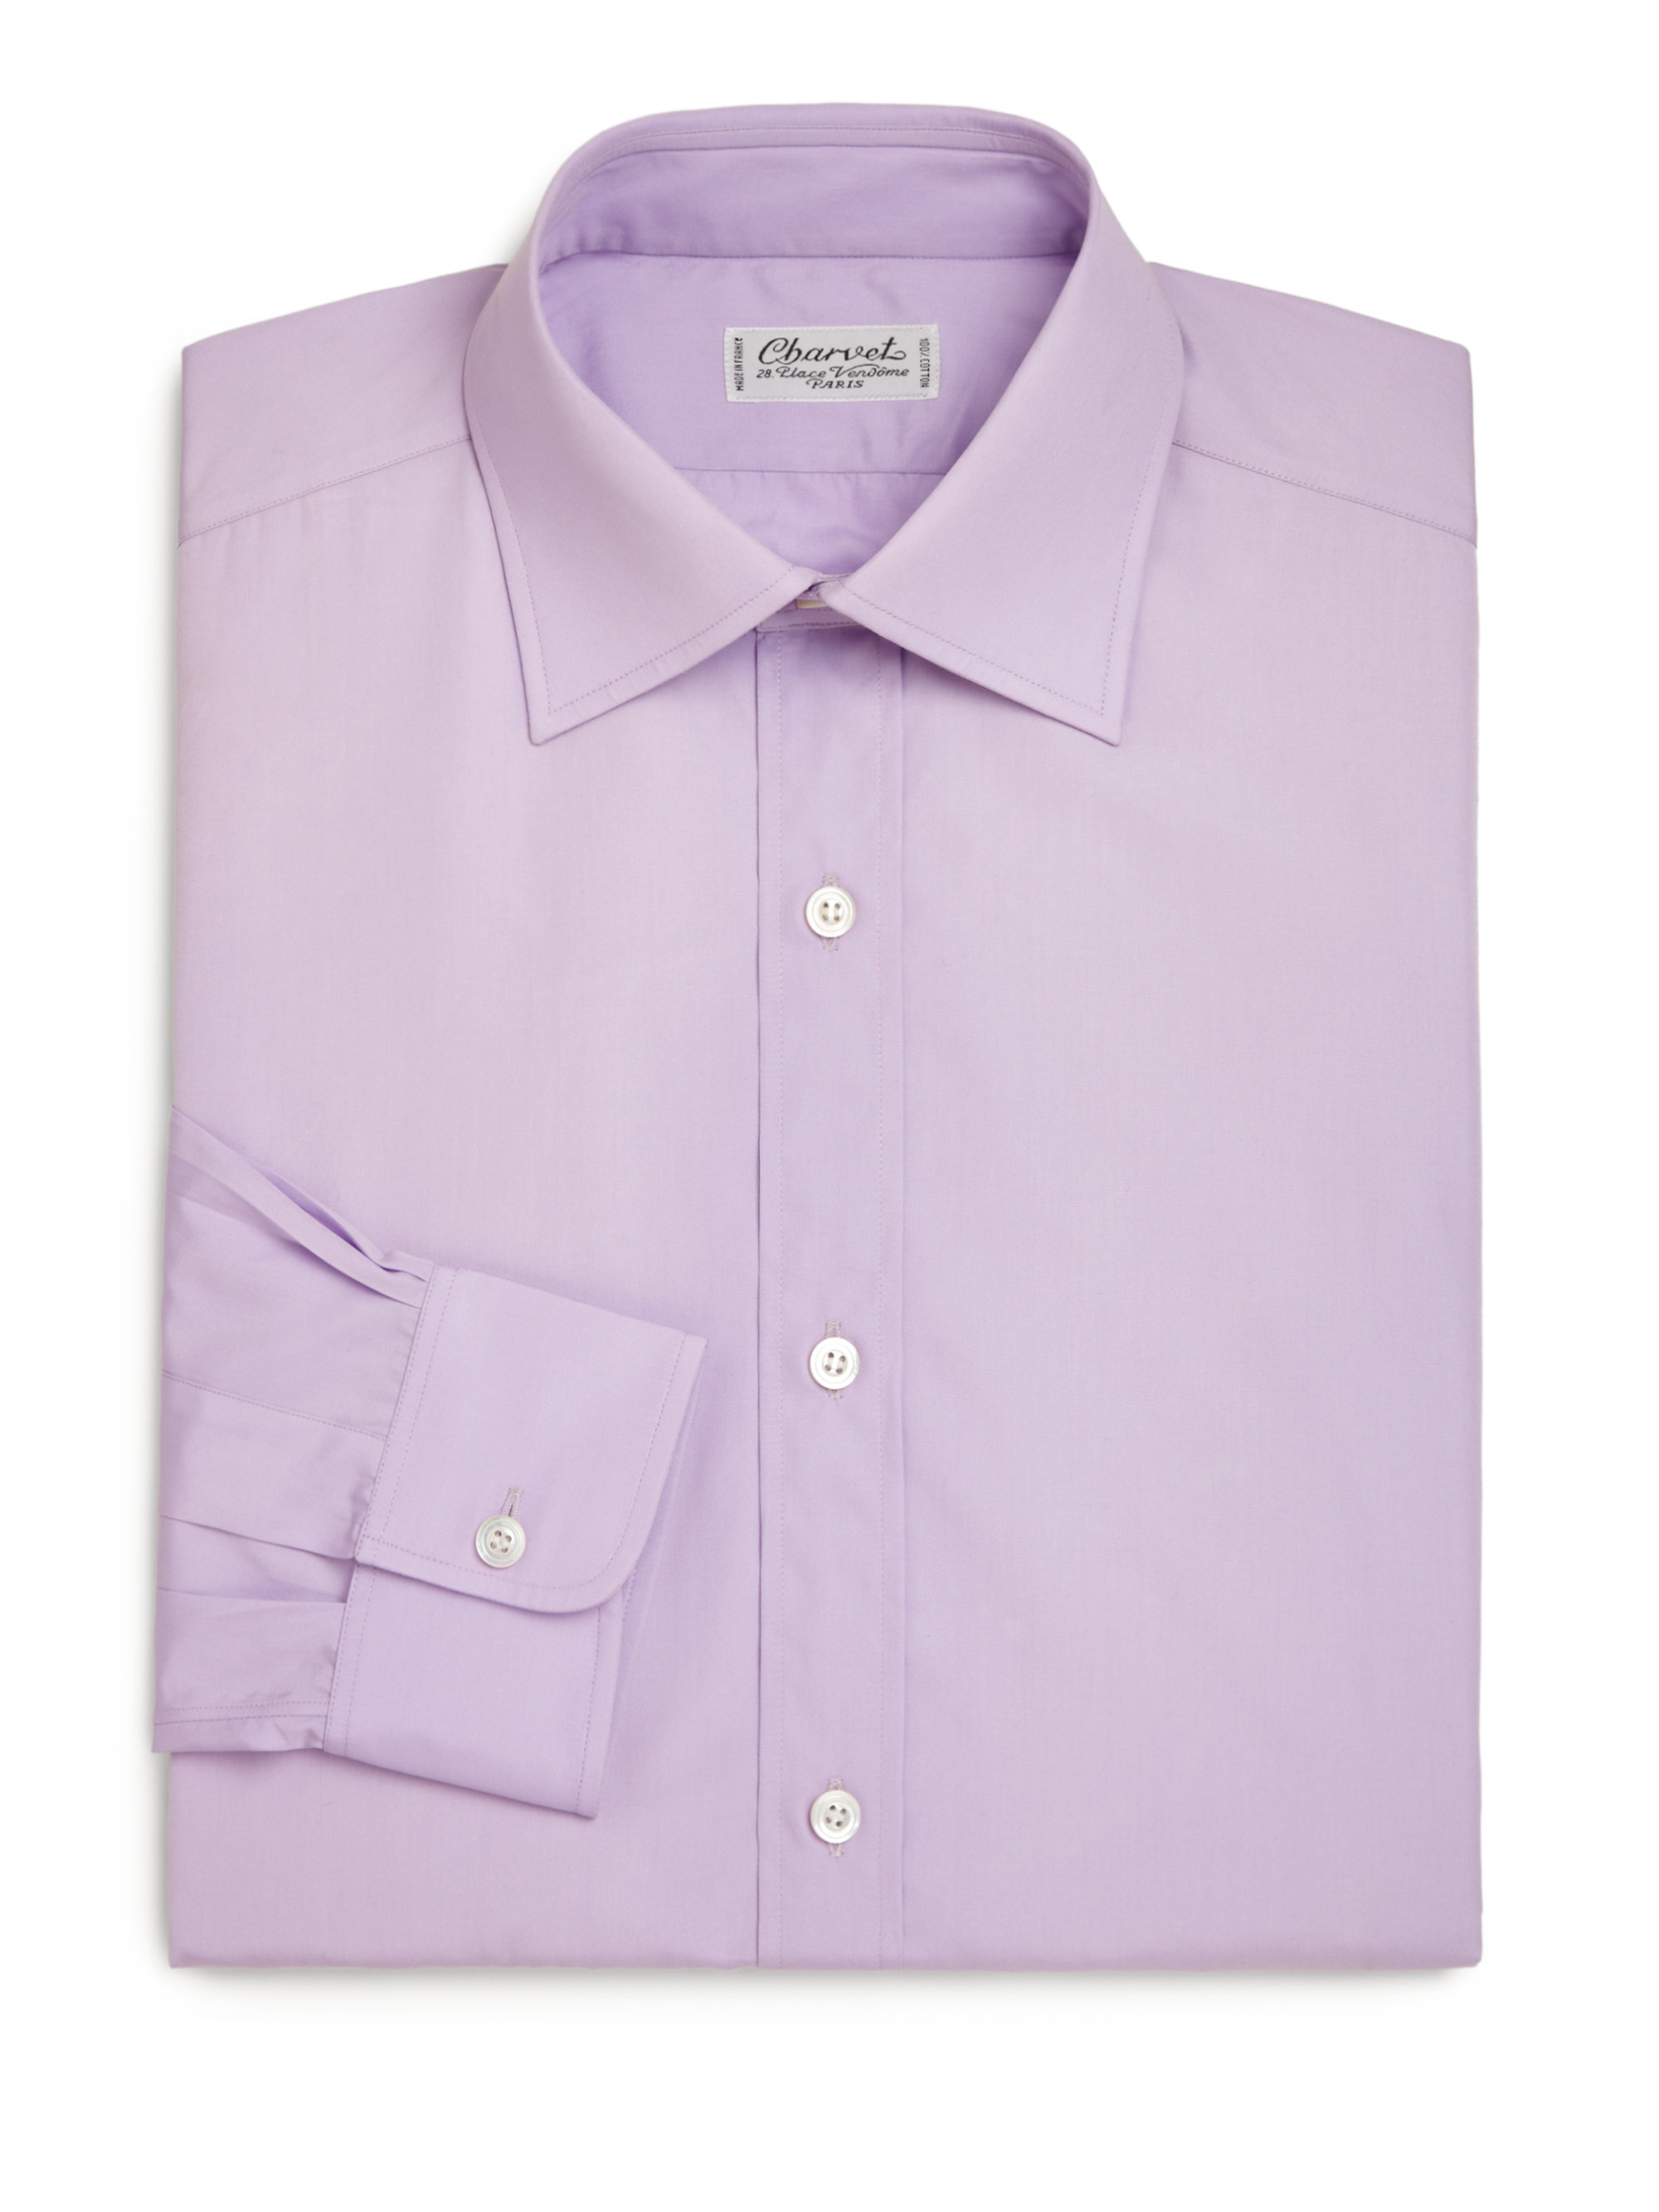 Charvet regular fit solid dress shirt in purple for men Light purple dress shirt men